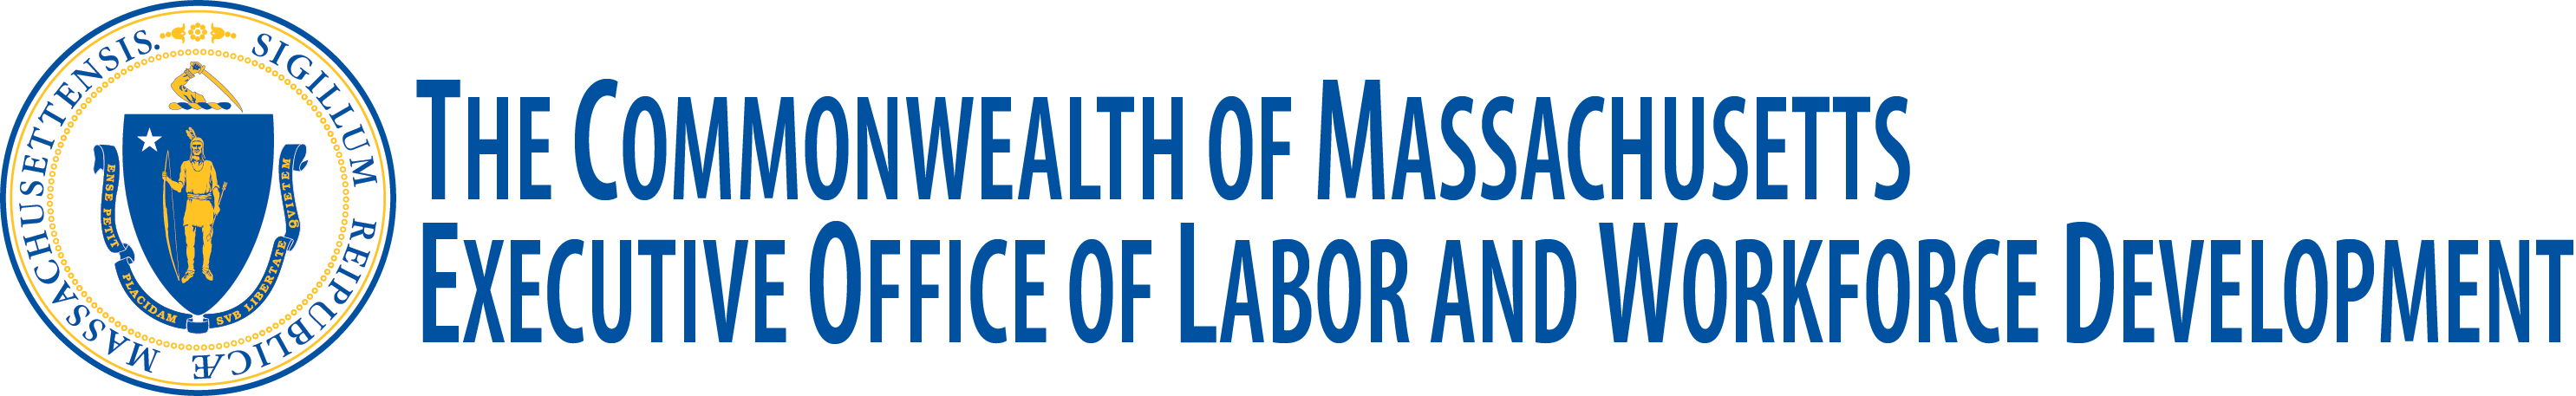 Massachusetts Workforce Development logo